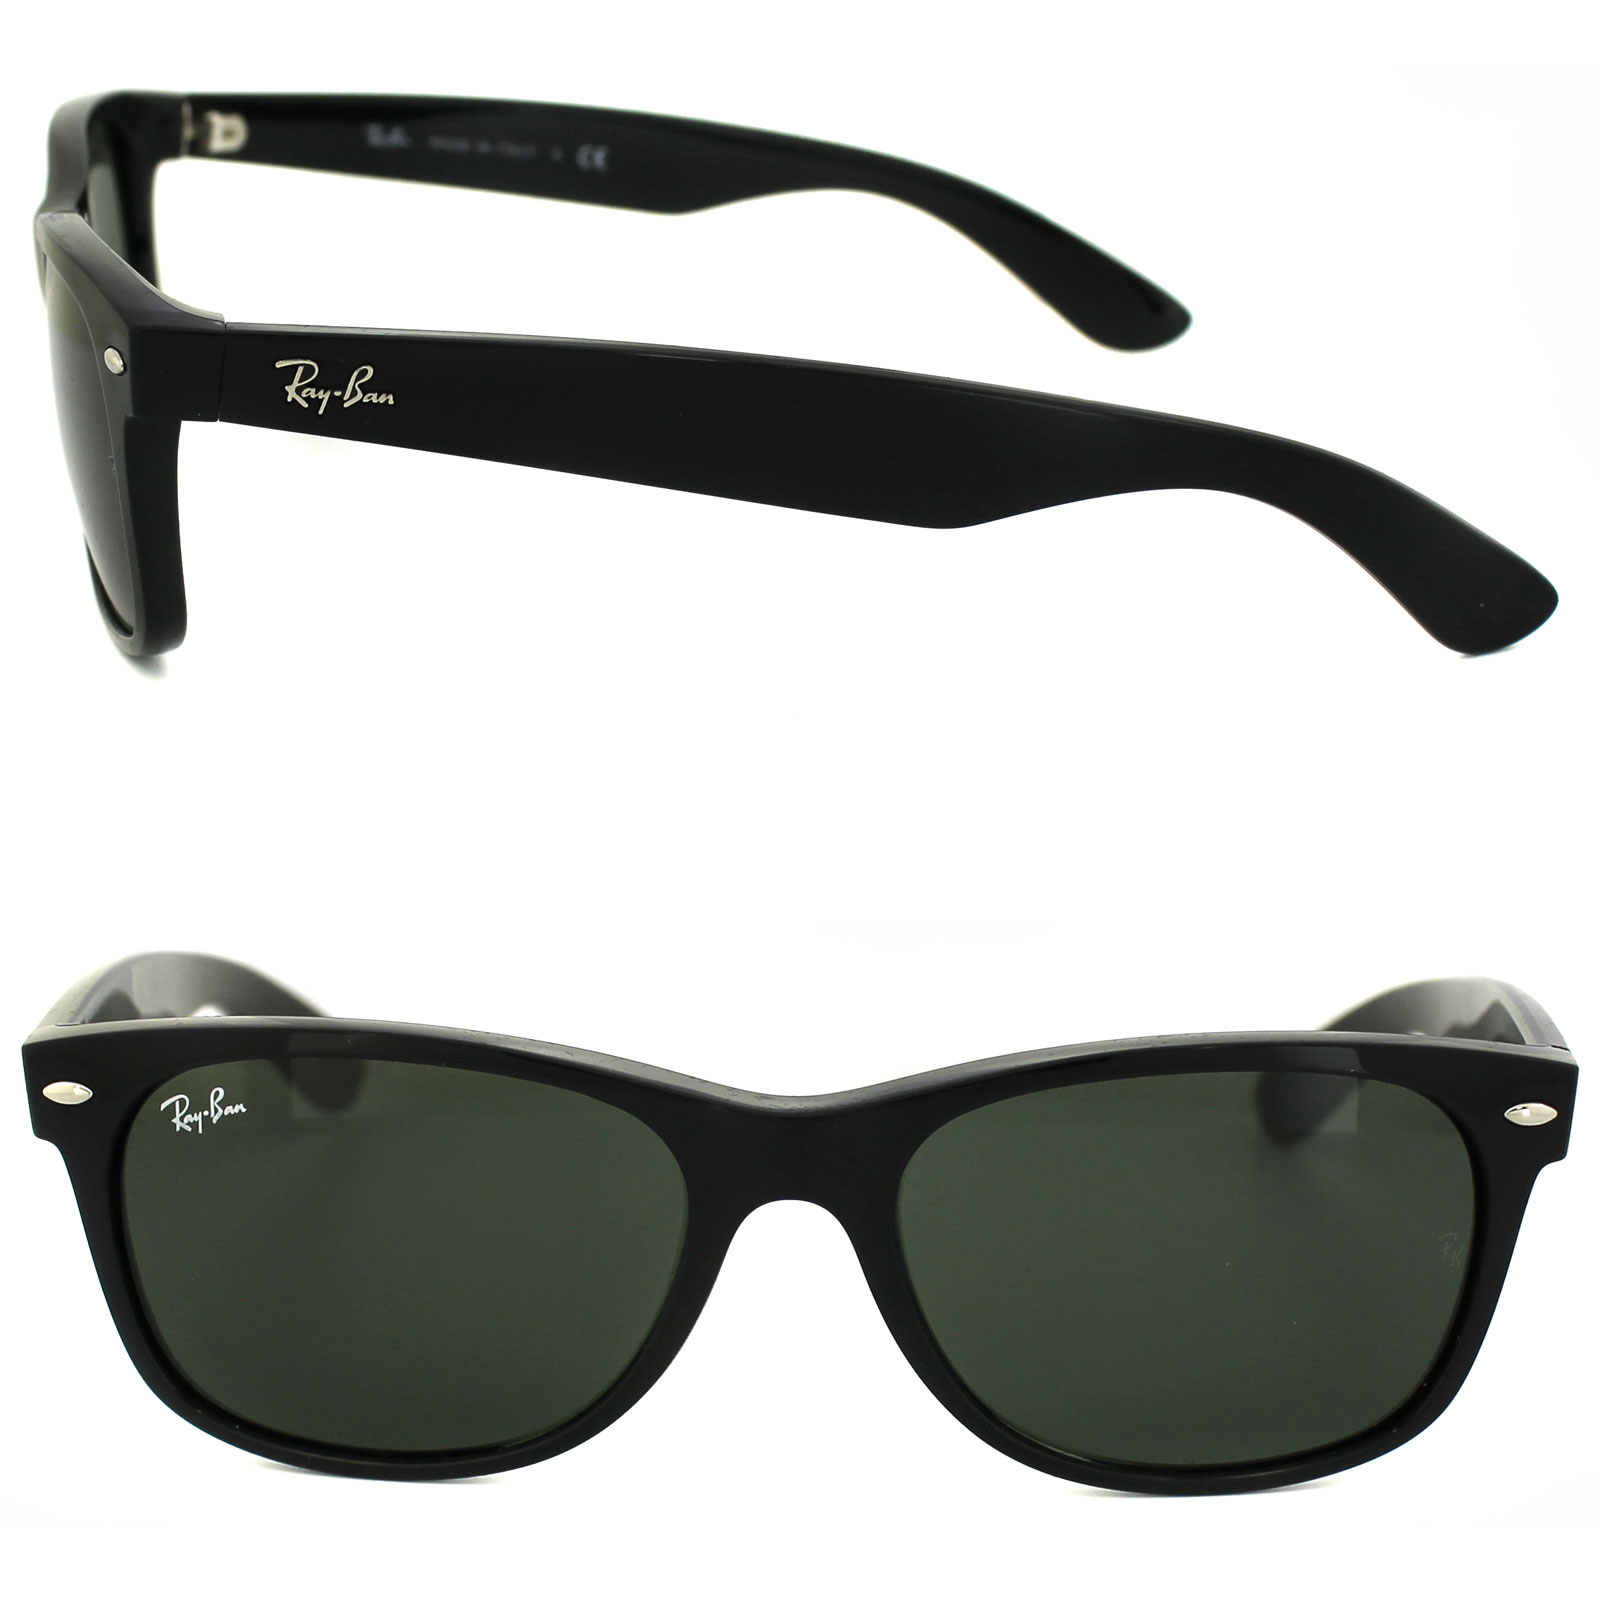 f2c3fc36d8 Cheap Ray-Ban New Wayfarer 2132 Sunglasses - Discounted Sunglasses